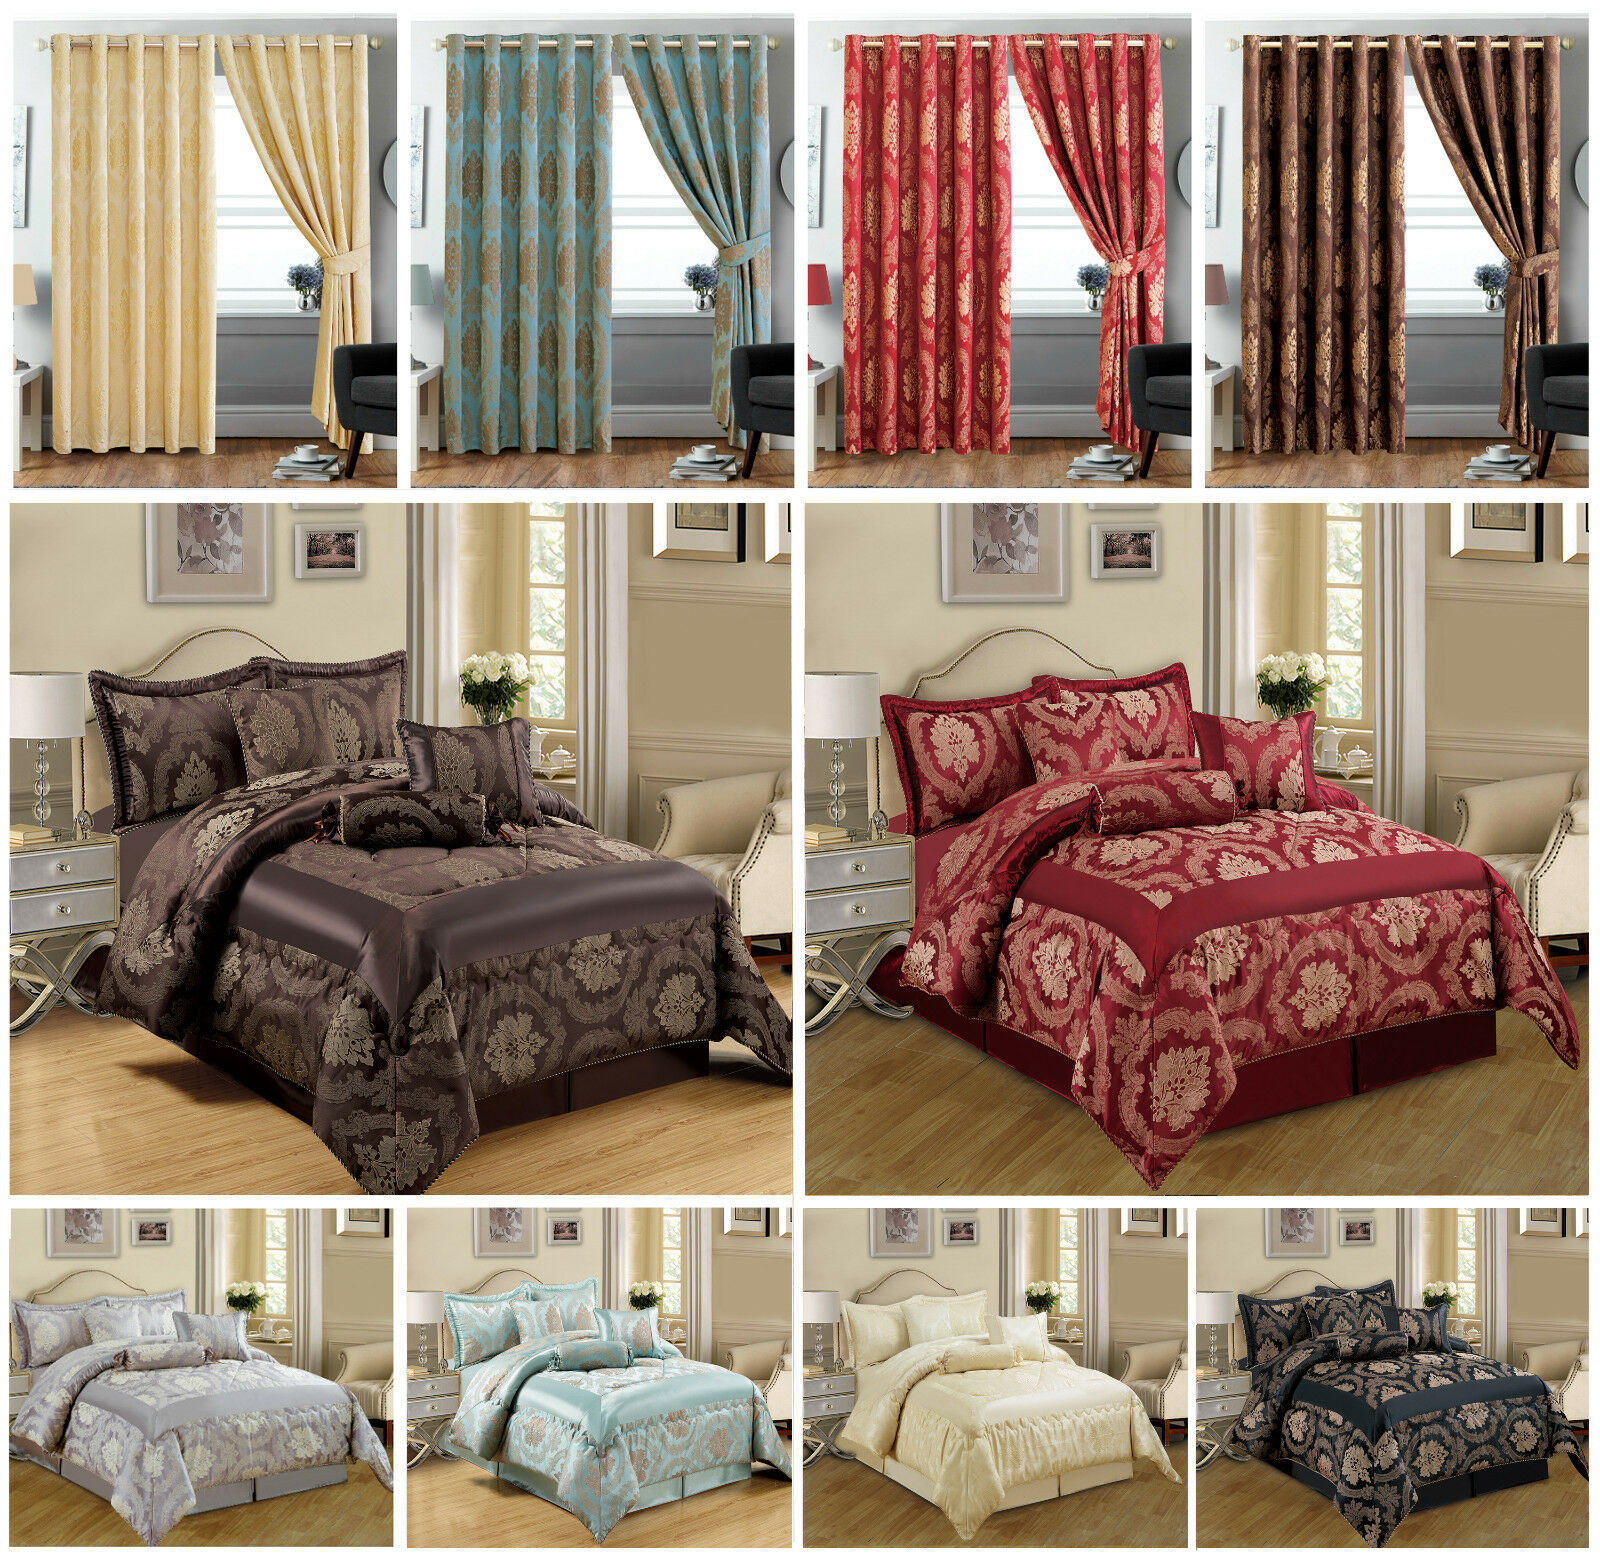 JACQUARD 7 PIECE QUILTED BEDSPREAD COMFORTER BEDDING SETS WITH EYELET CURTAINS